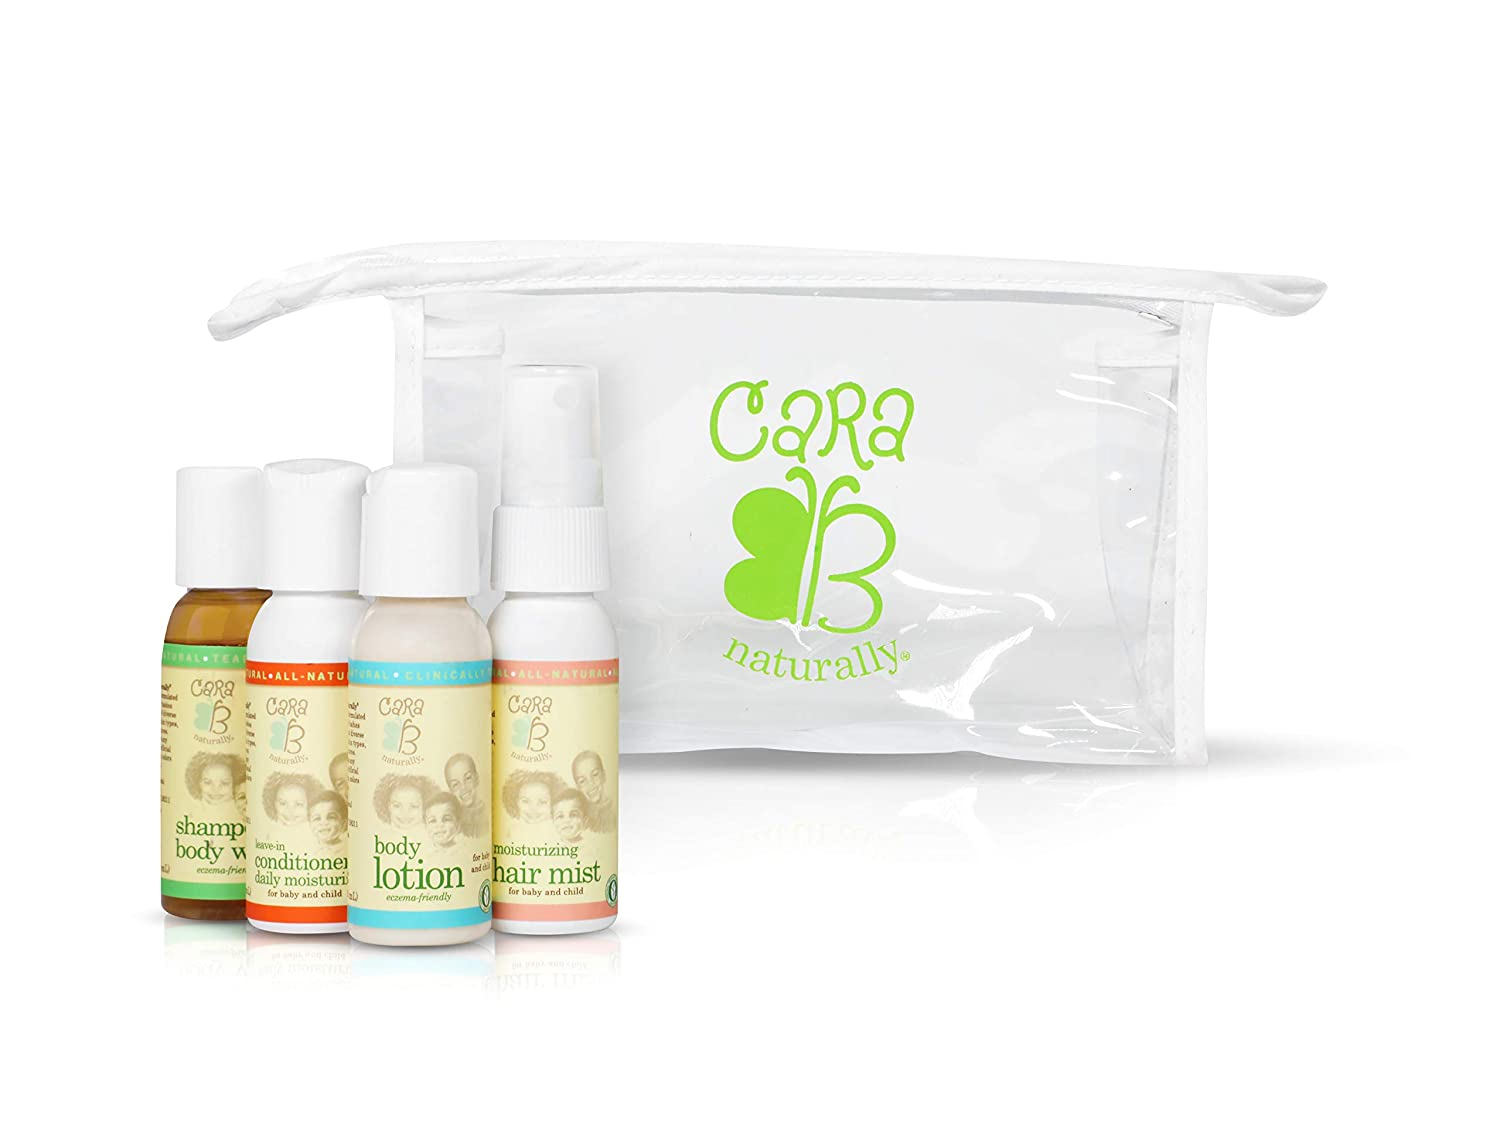 CARA B Naturally Travel Convenience Bundle w/TSA-Approved Travel Bag - Shampoo/Body Wash, Leave-in Conditioner/Daily Moisturizer, Moisturizing Hair Mist and Body Lotion – Pack of 4 at 1 Ounce Each